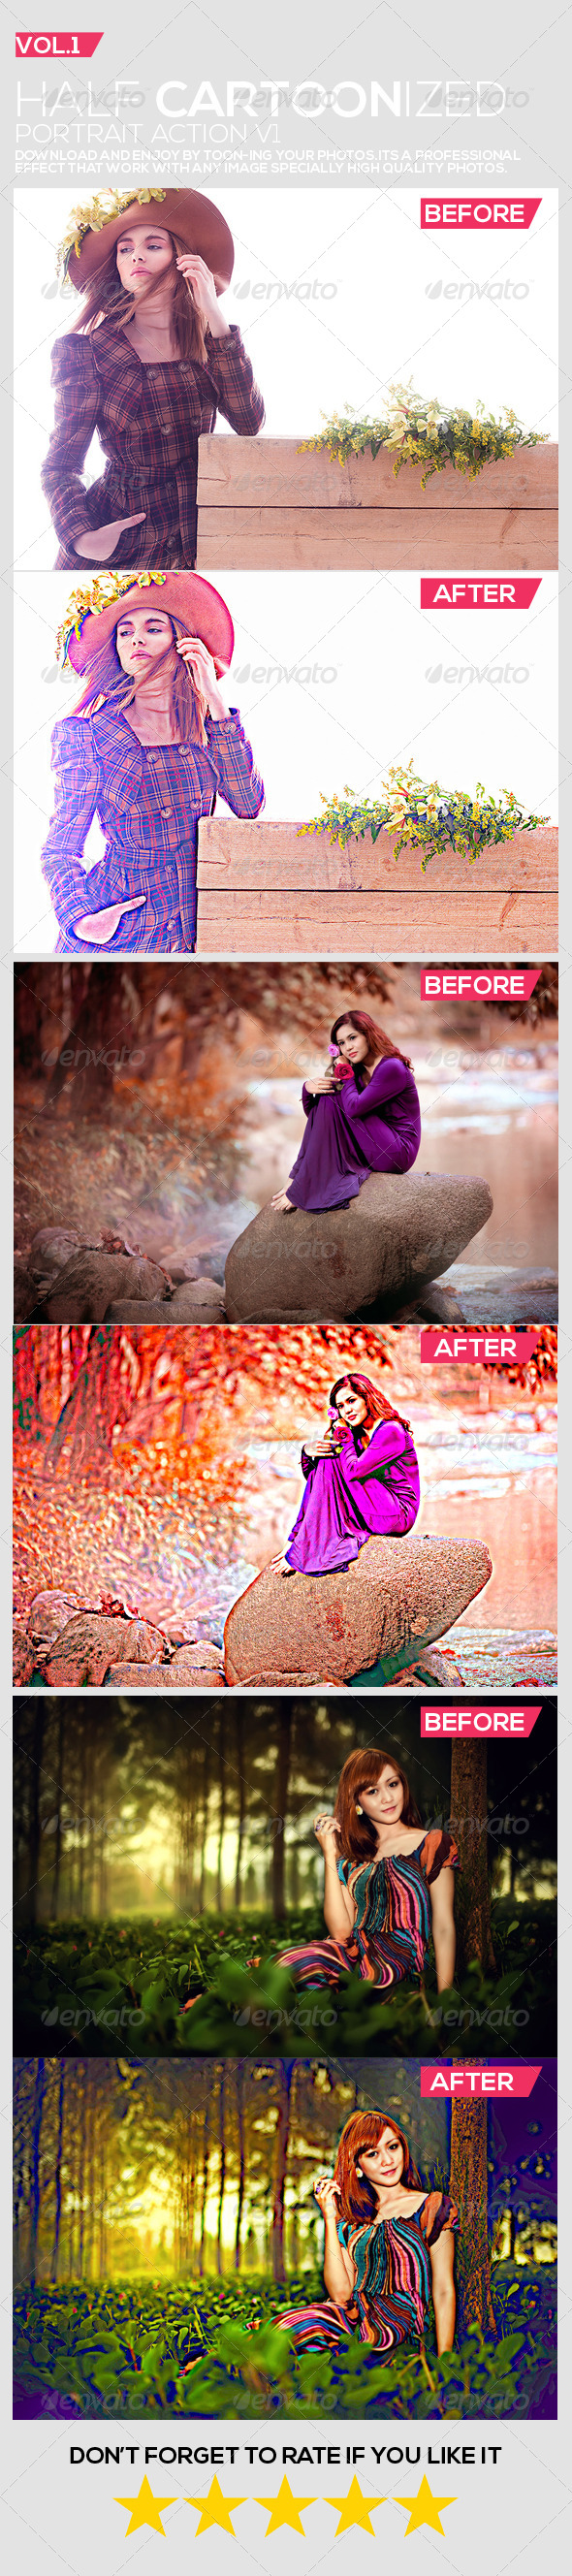 GraphicRiver Half Cartoonized Portrait Action V1 8077433